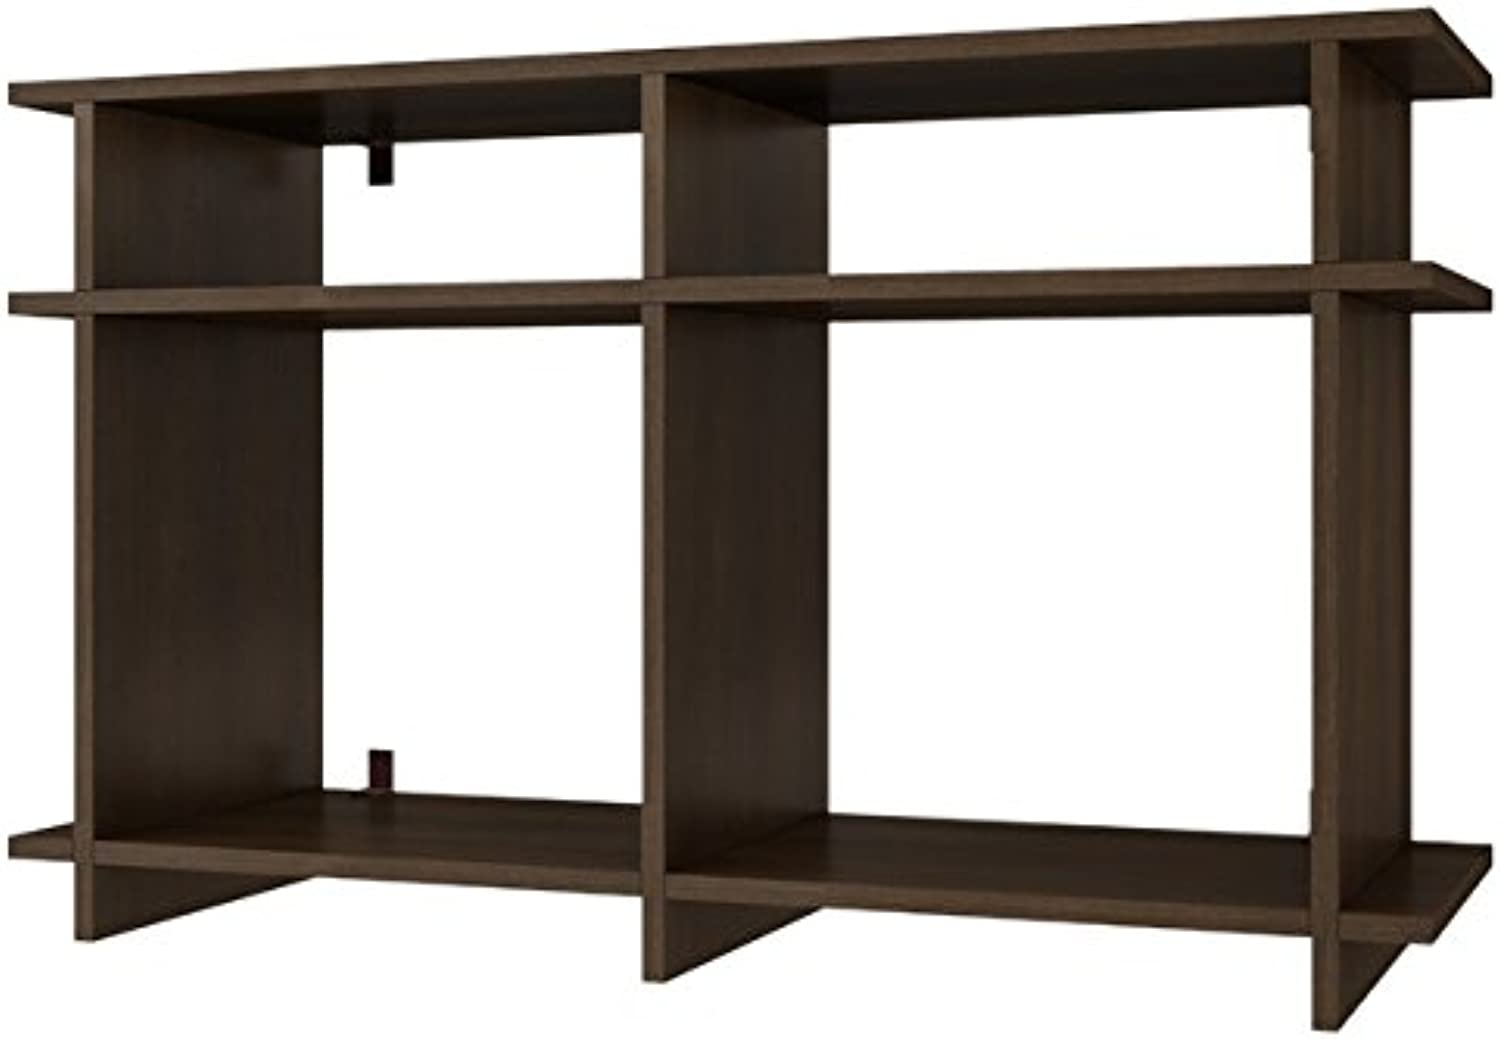 Manhattan Comfort Accentuations by Suitable Wellington TV Stand with 4 Open Shelves in Tobacco